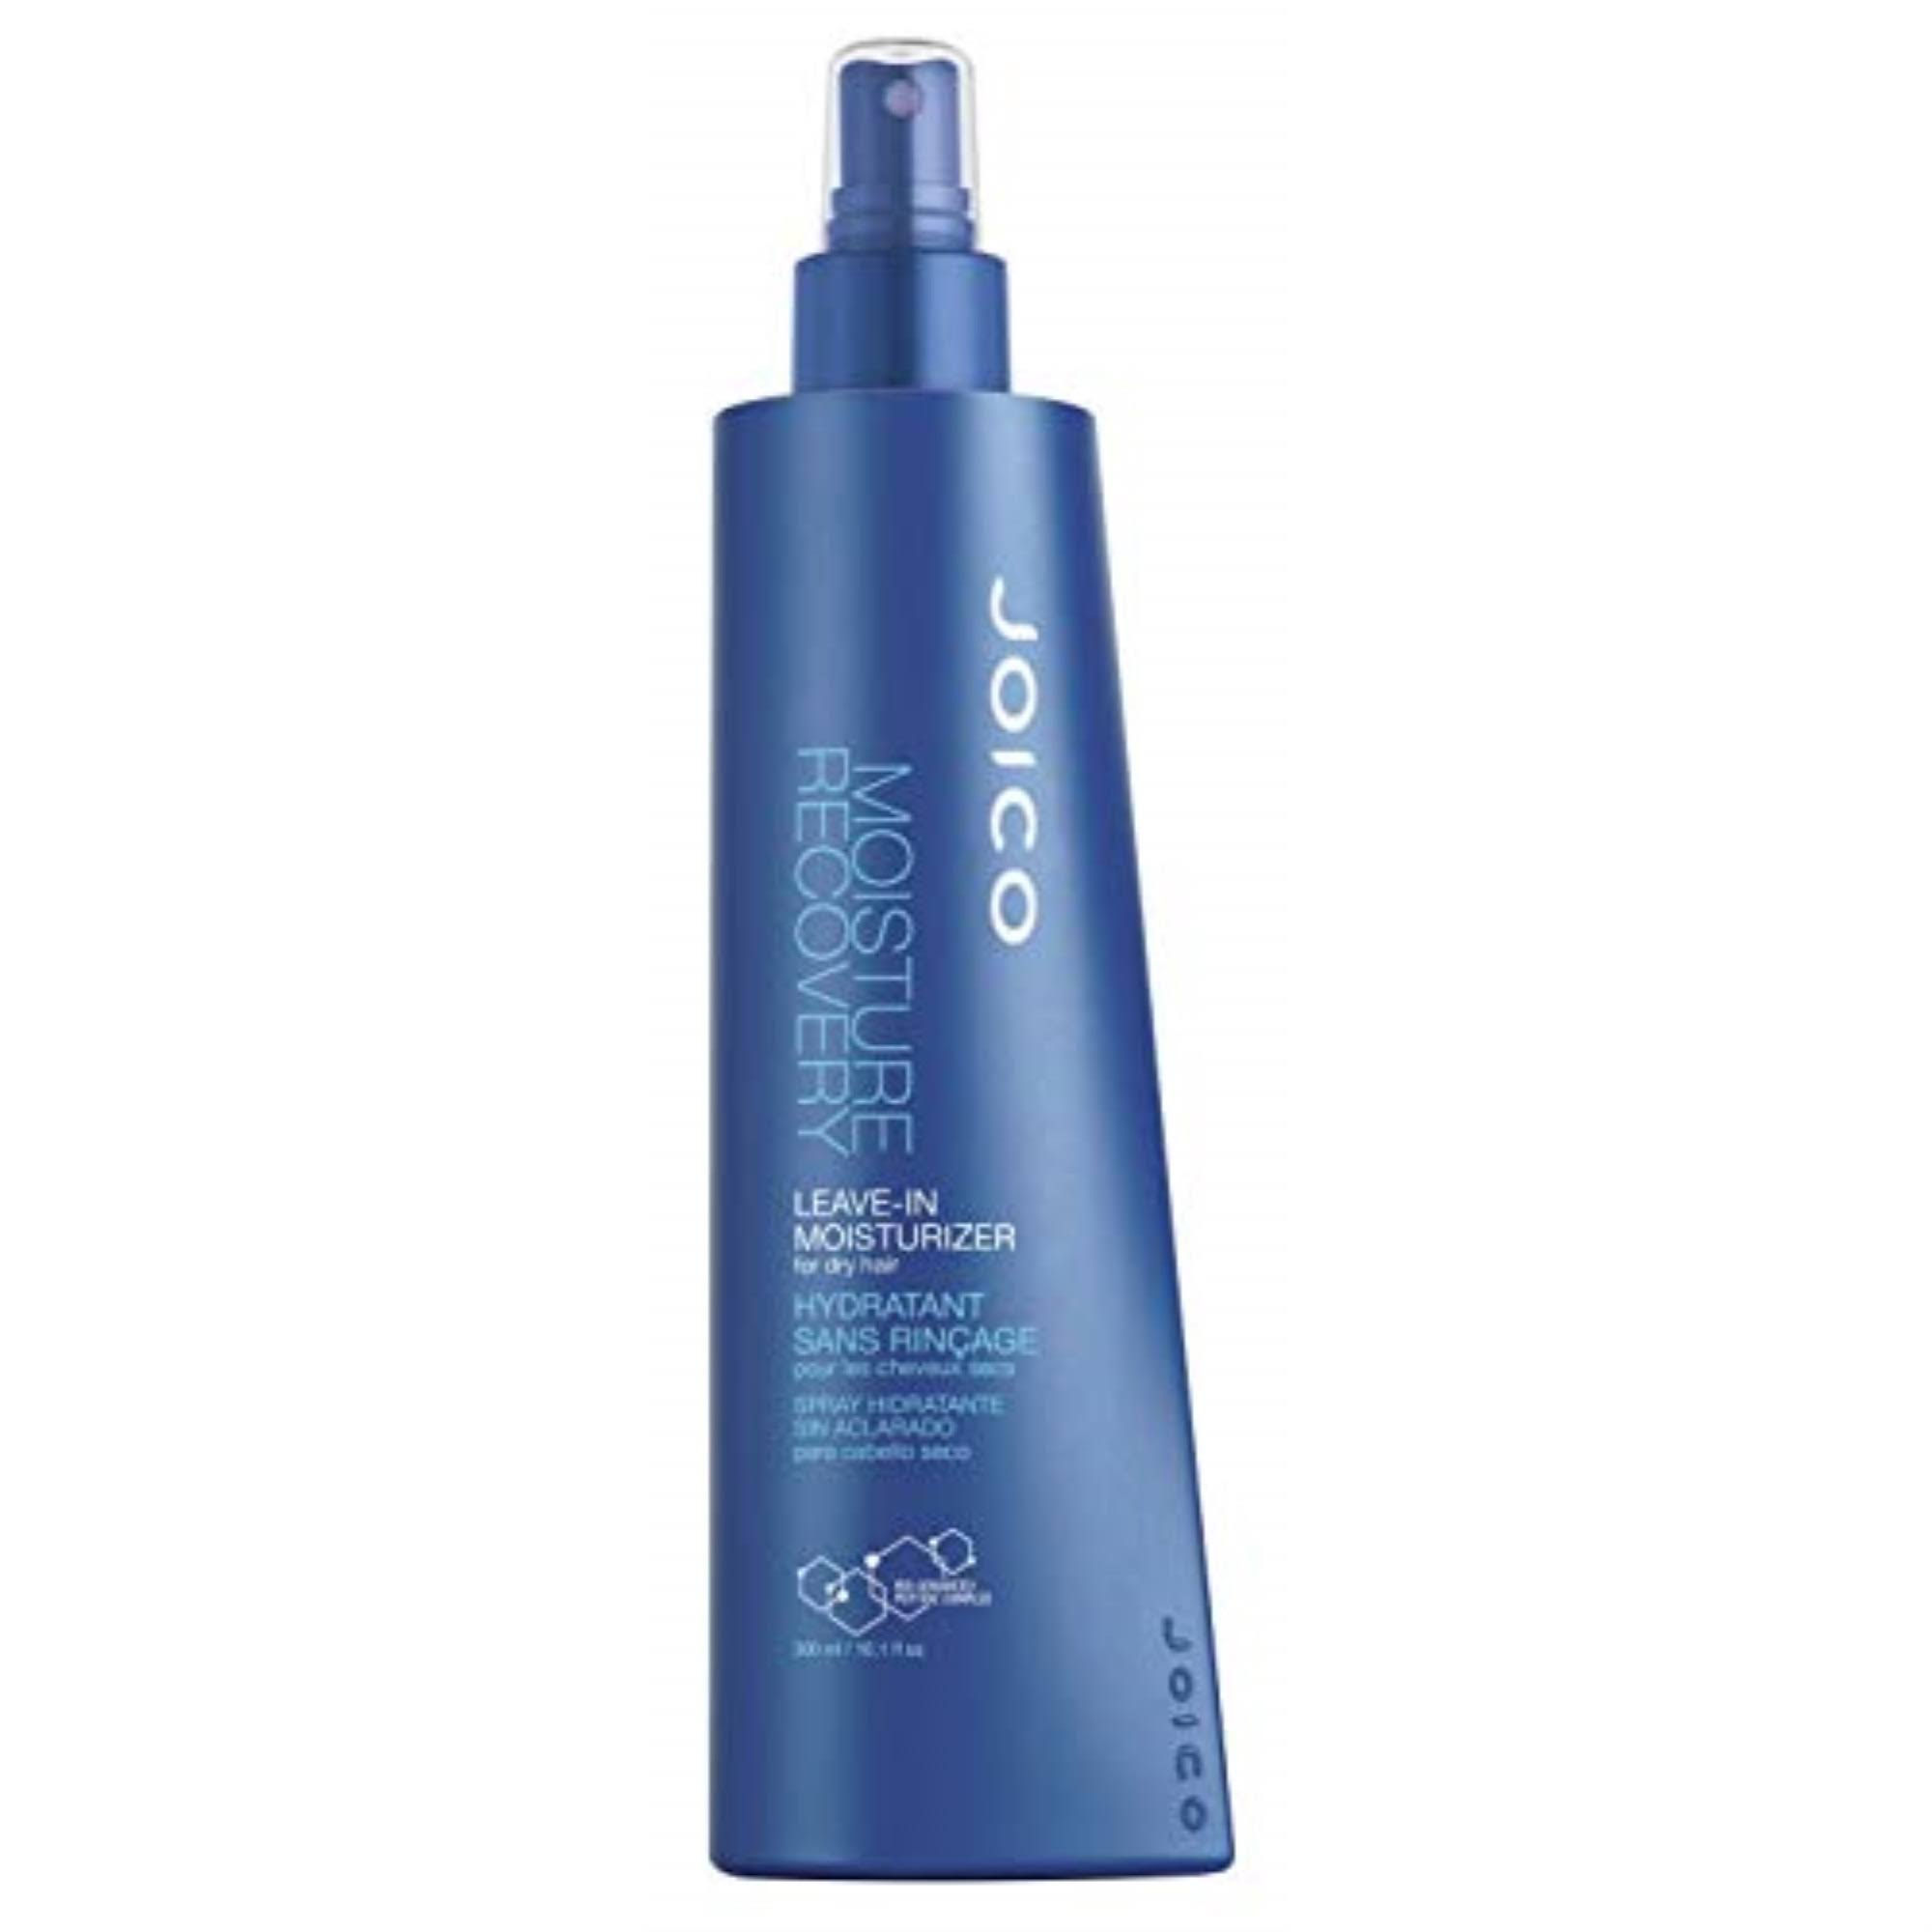 JOICO Moisture Recovery Leave-in Moisturizer - 300ml